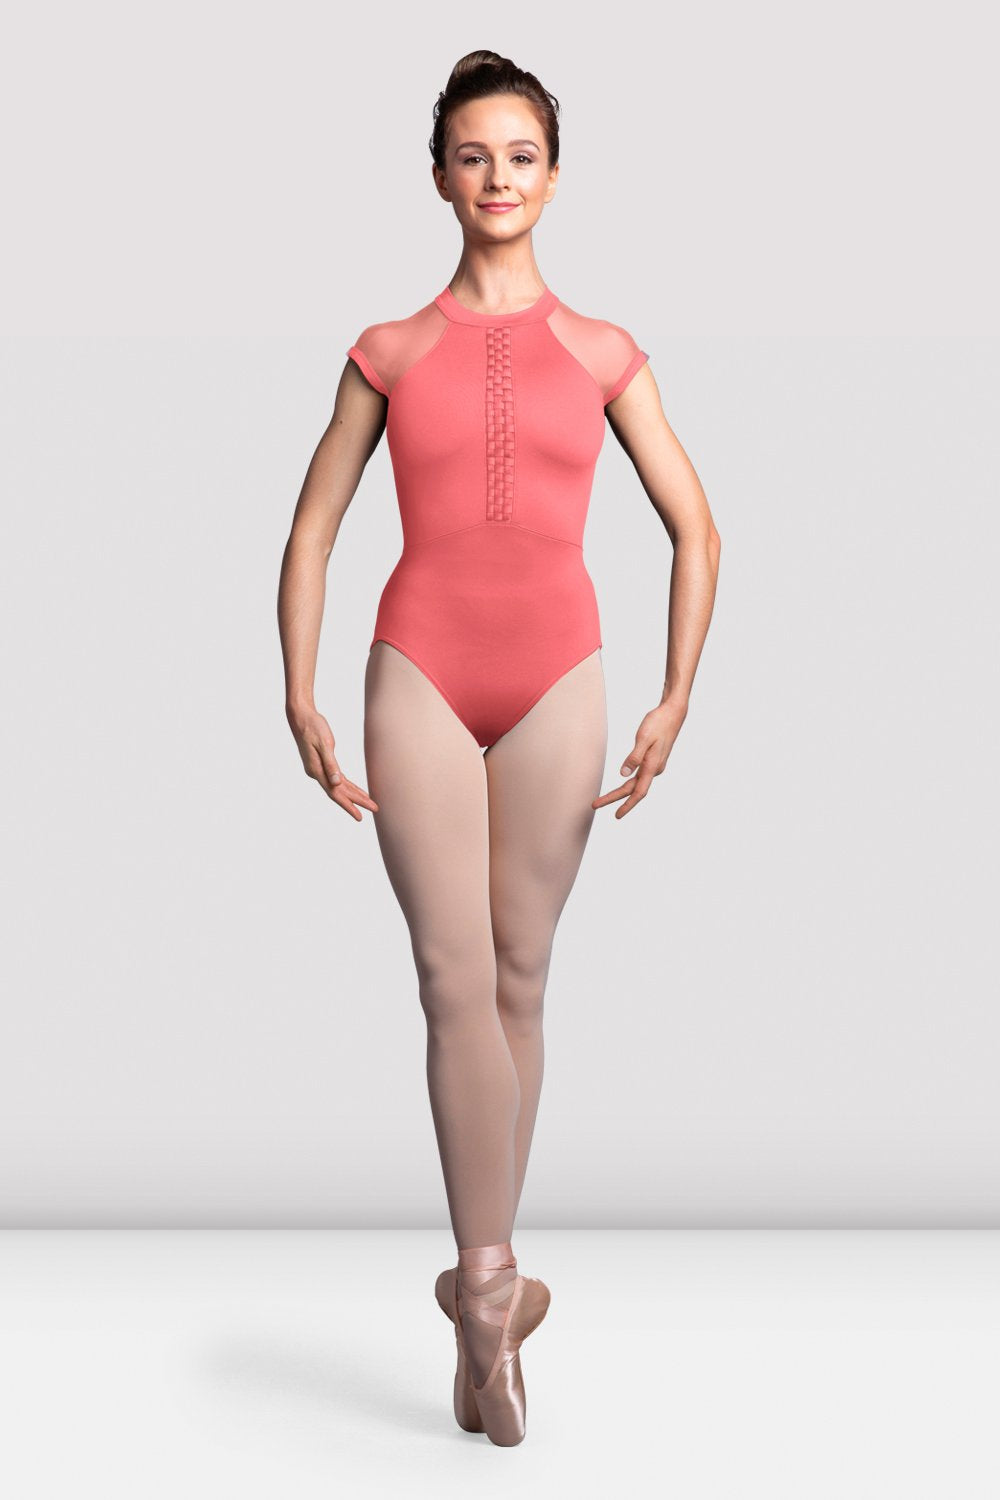 Ladies Empress Cap Sleeve Open Back Leotard - BLOCH US